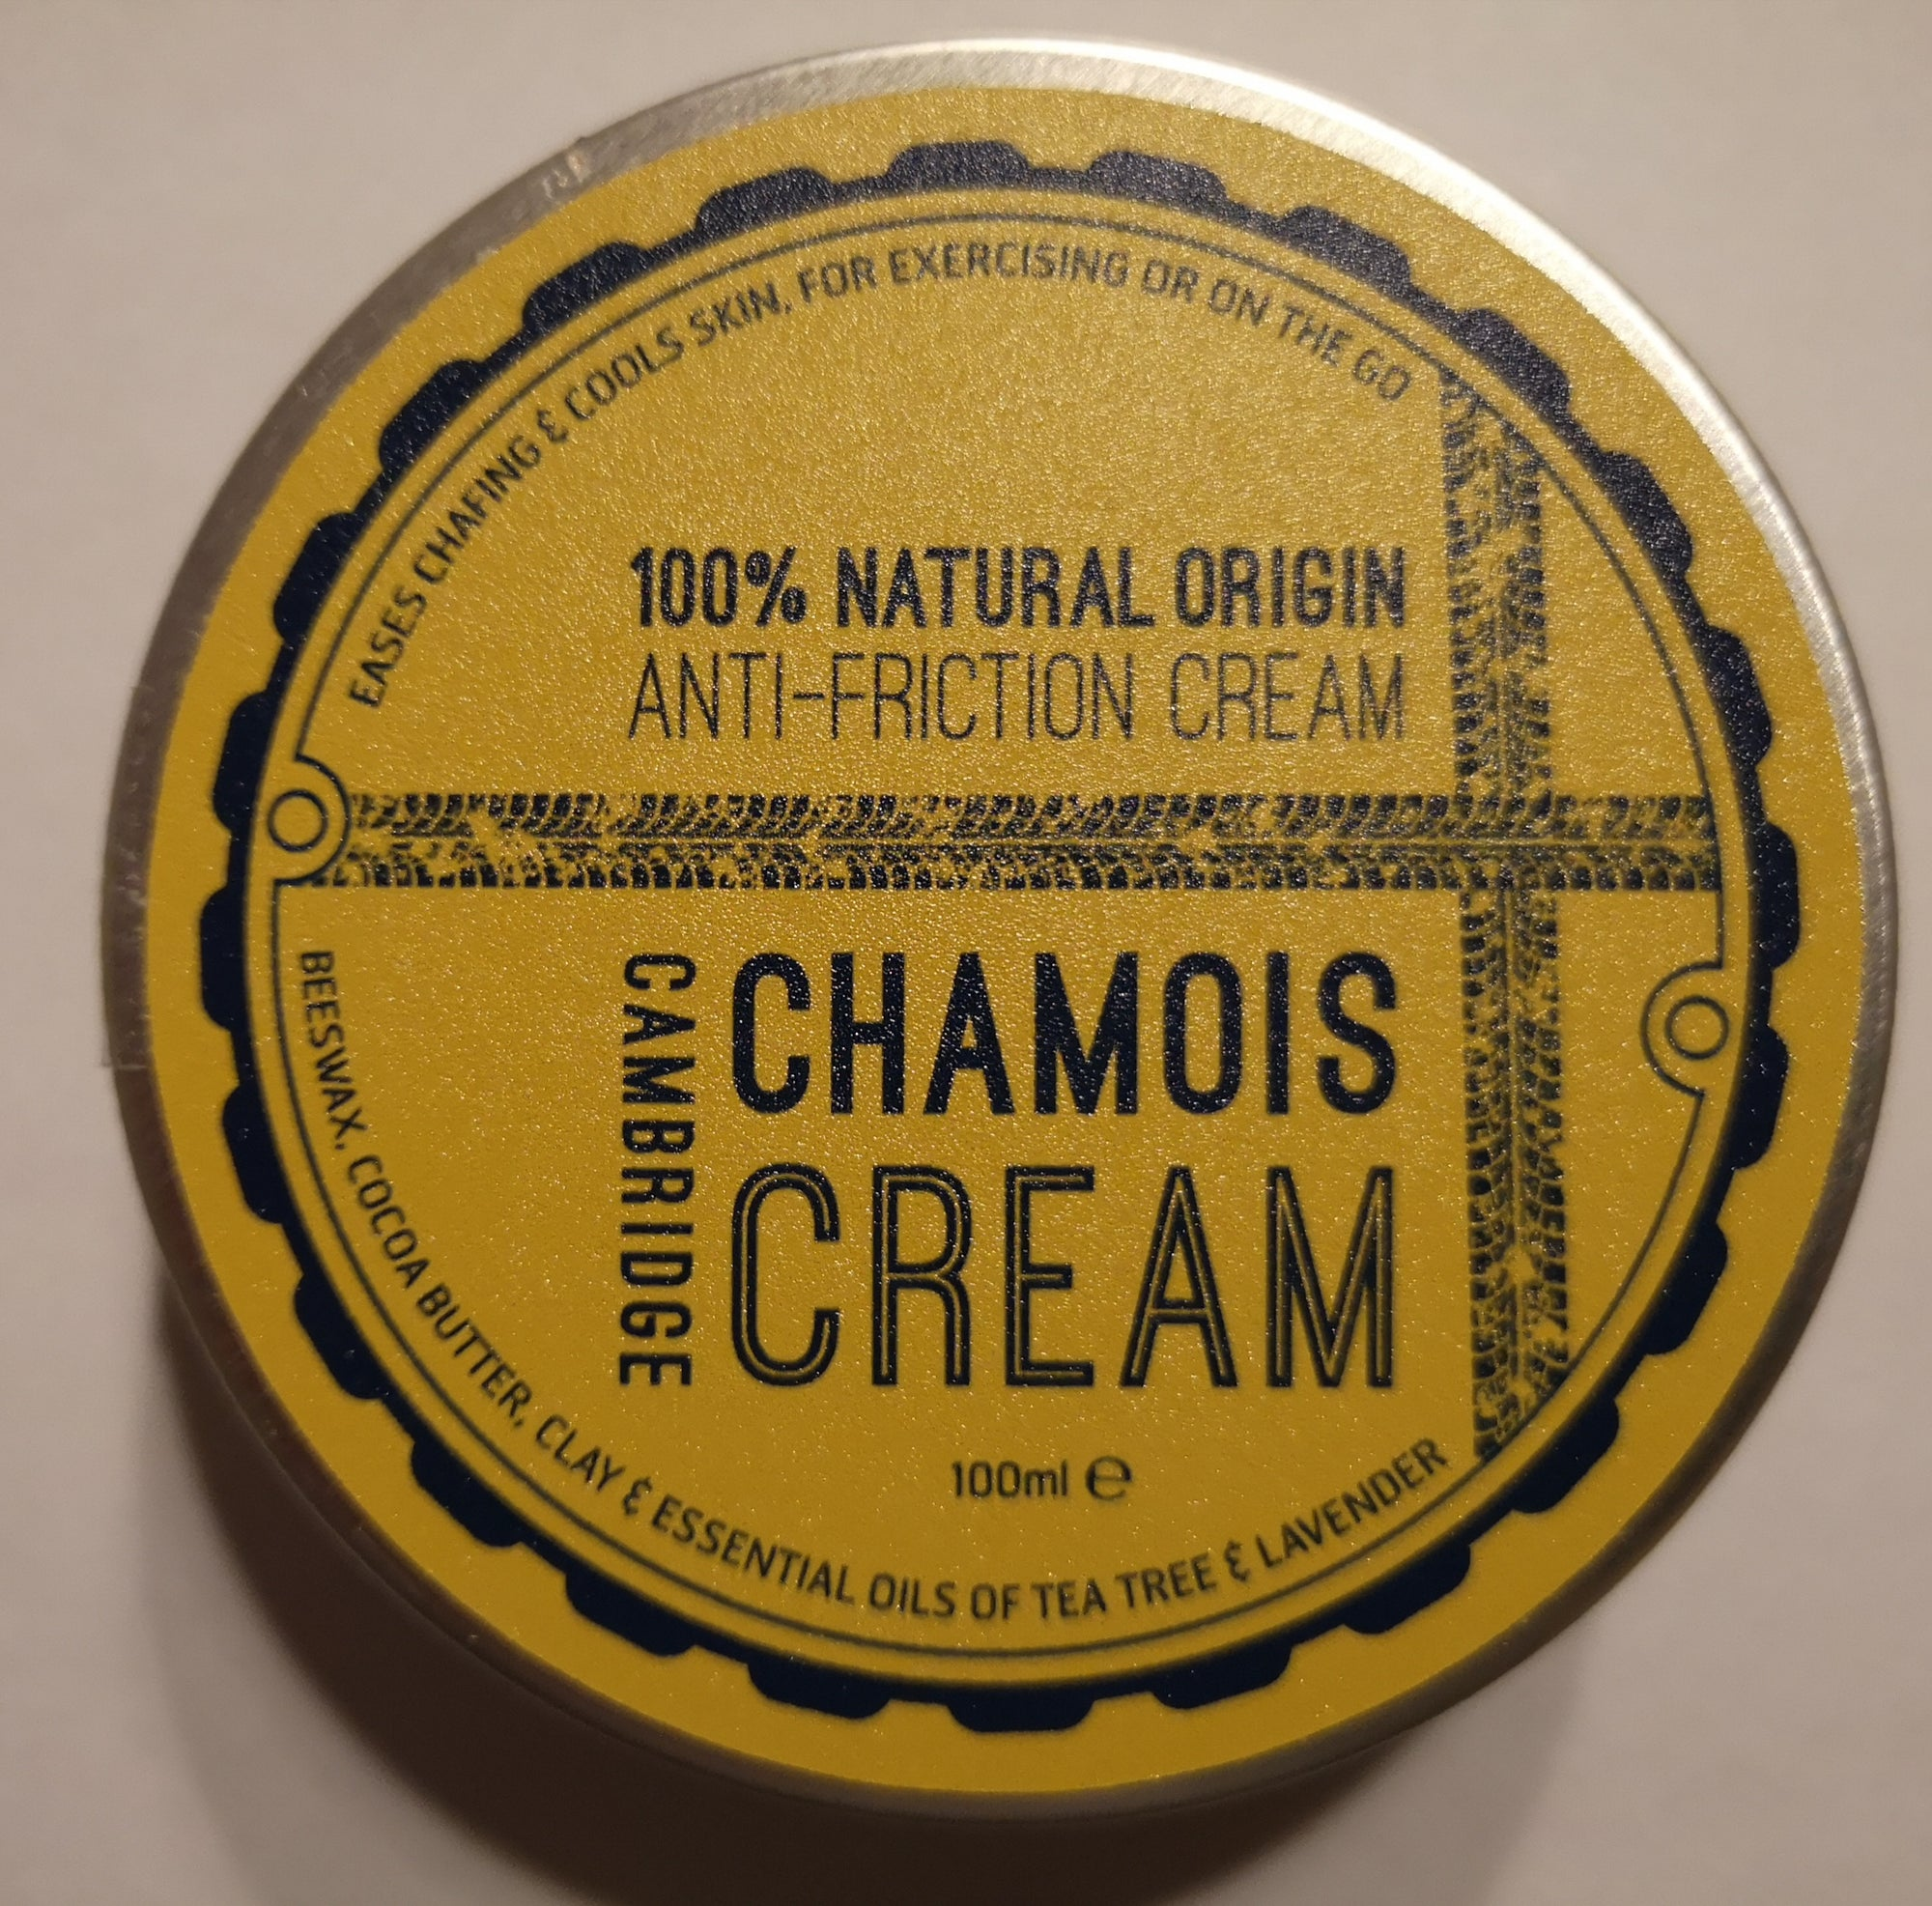 Cambridge Chamois Cream (100ml)